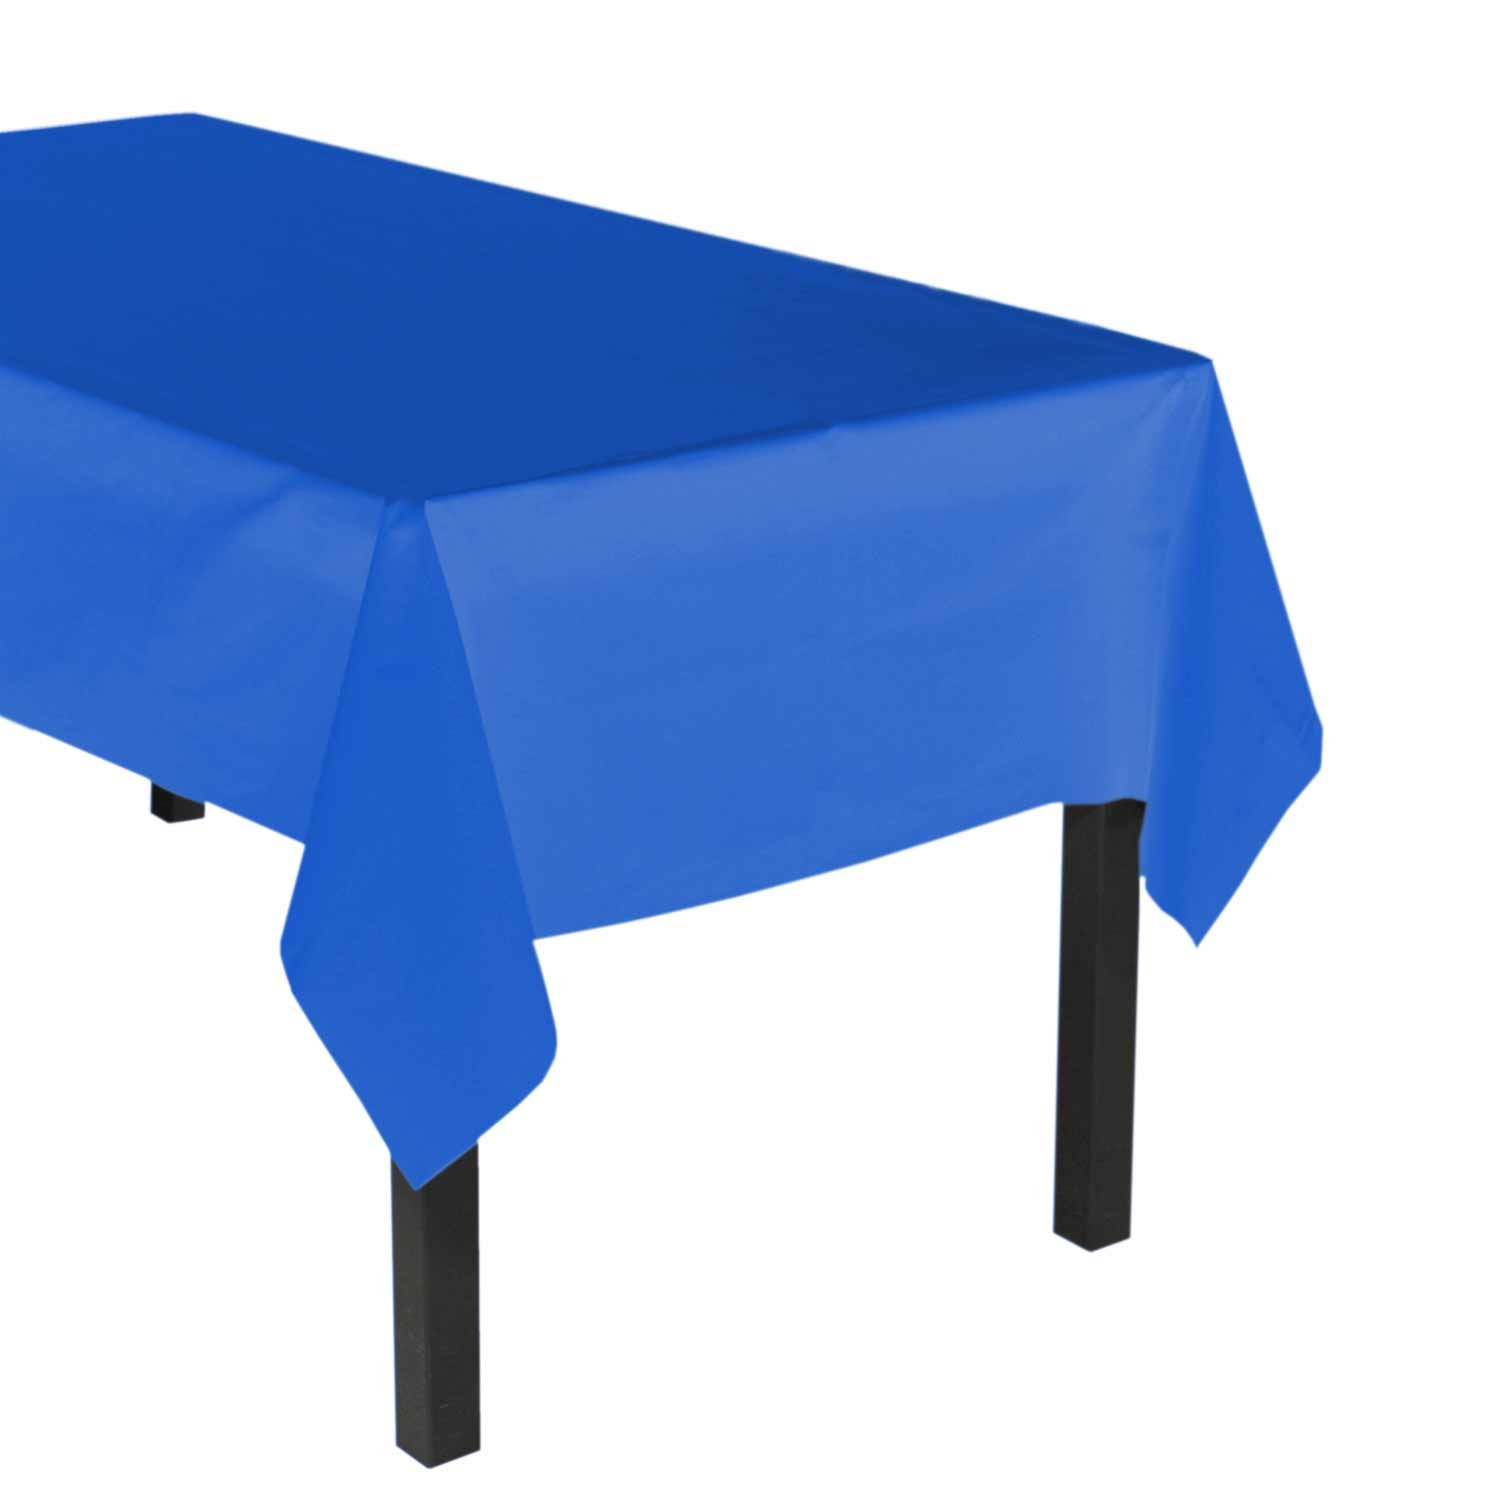 Party Essentials ValuMost Plastic Table Cover Available in 36 Colors, 54'' x 108'', Royal Blue by Party Essentials